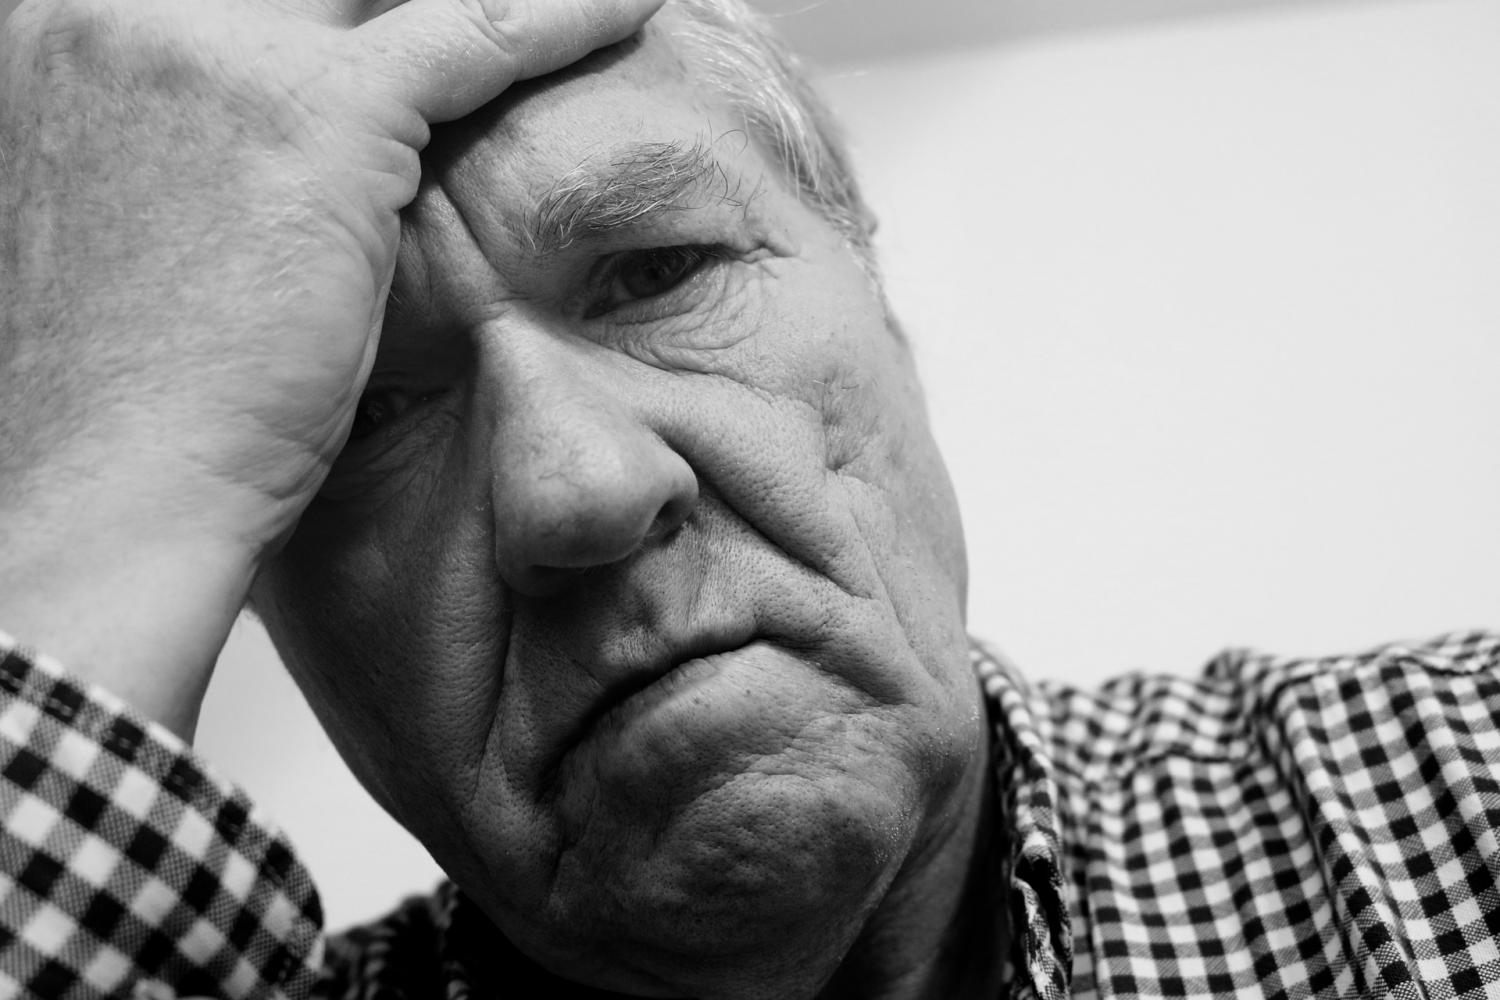 It's not just a pain in the head-facial pain can be a symptom of headaches too